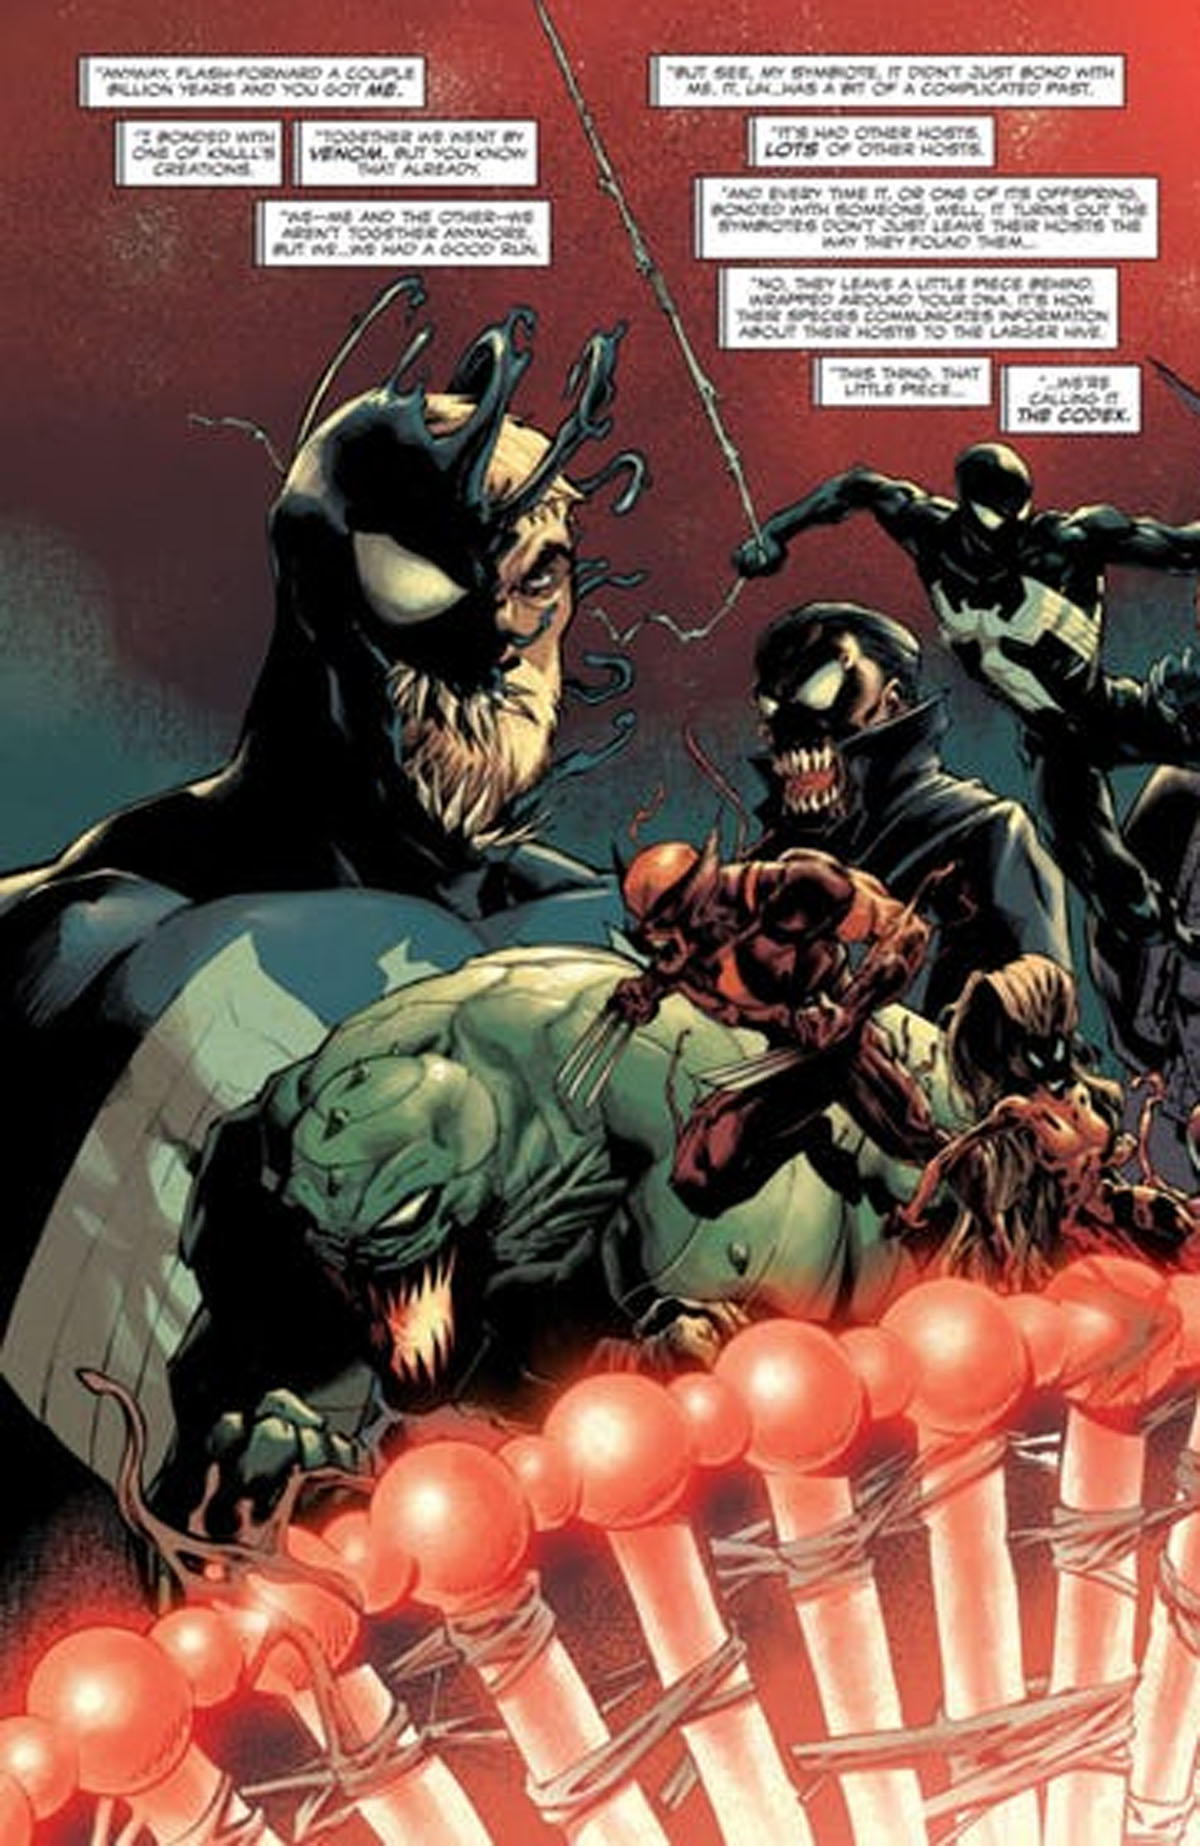 First Look At Marvel's Absolute Carnage #1